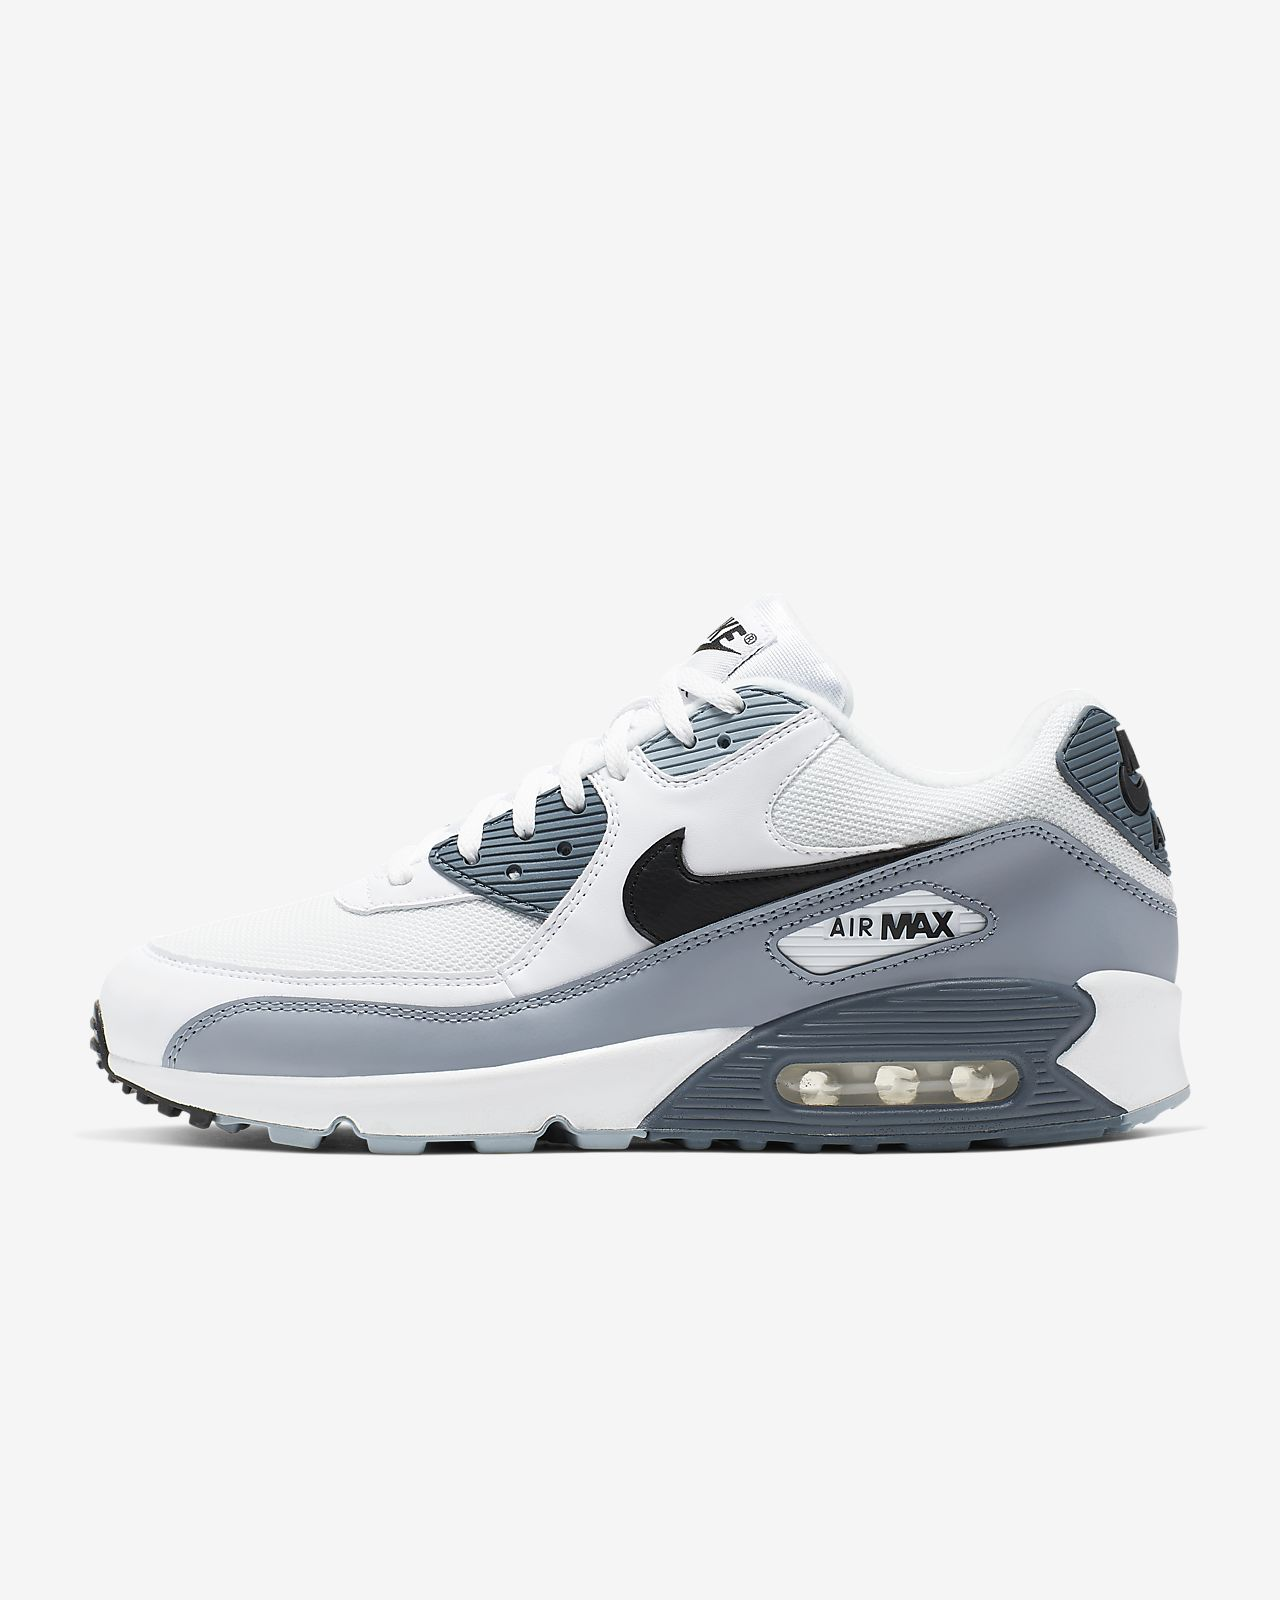 separation shoes fdcf2 763e2 ... Nike Air Max 90 Essential Men s Shoe